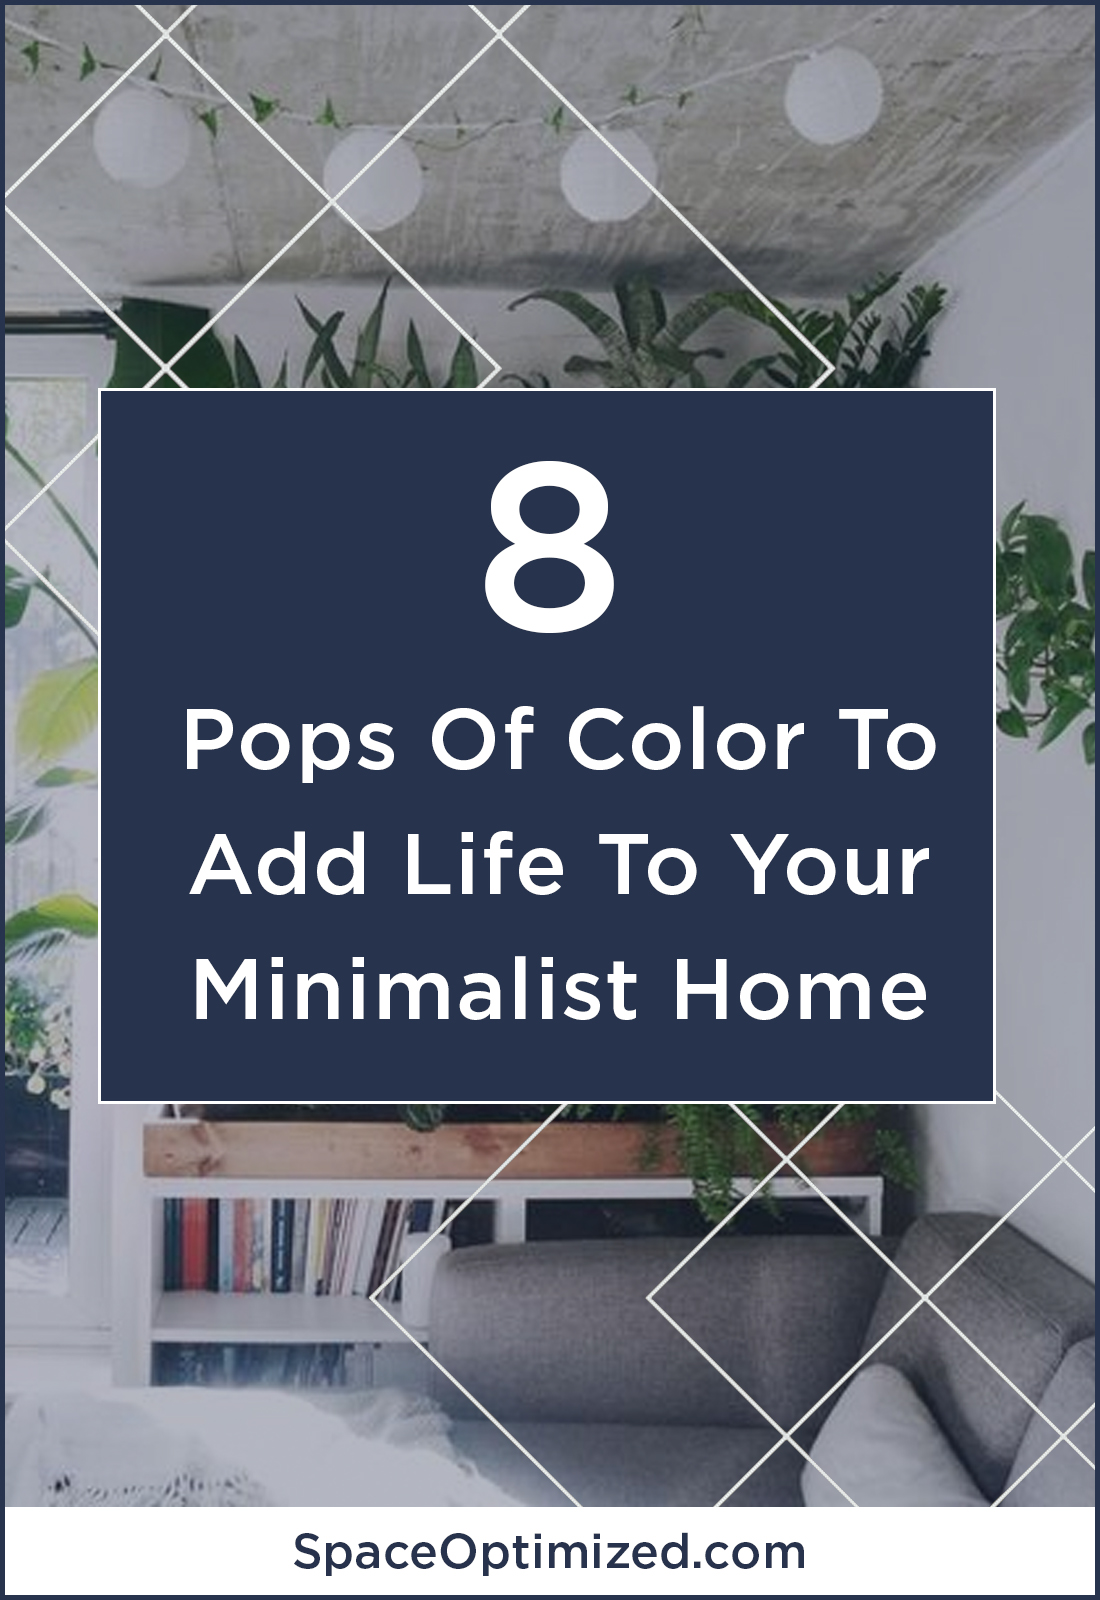 8 Accent Colors For A Microapartment With Black And White